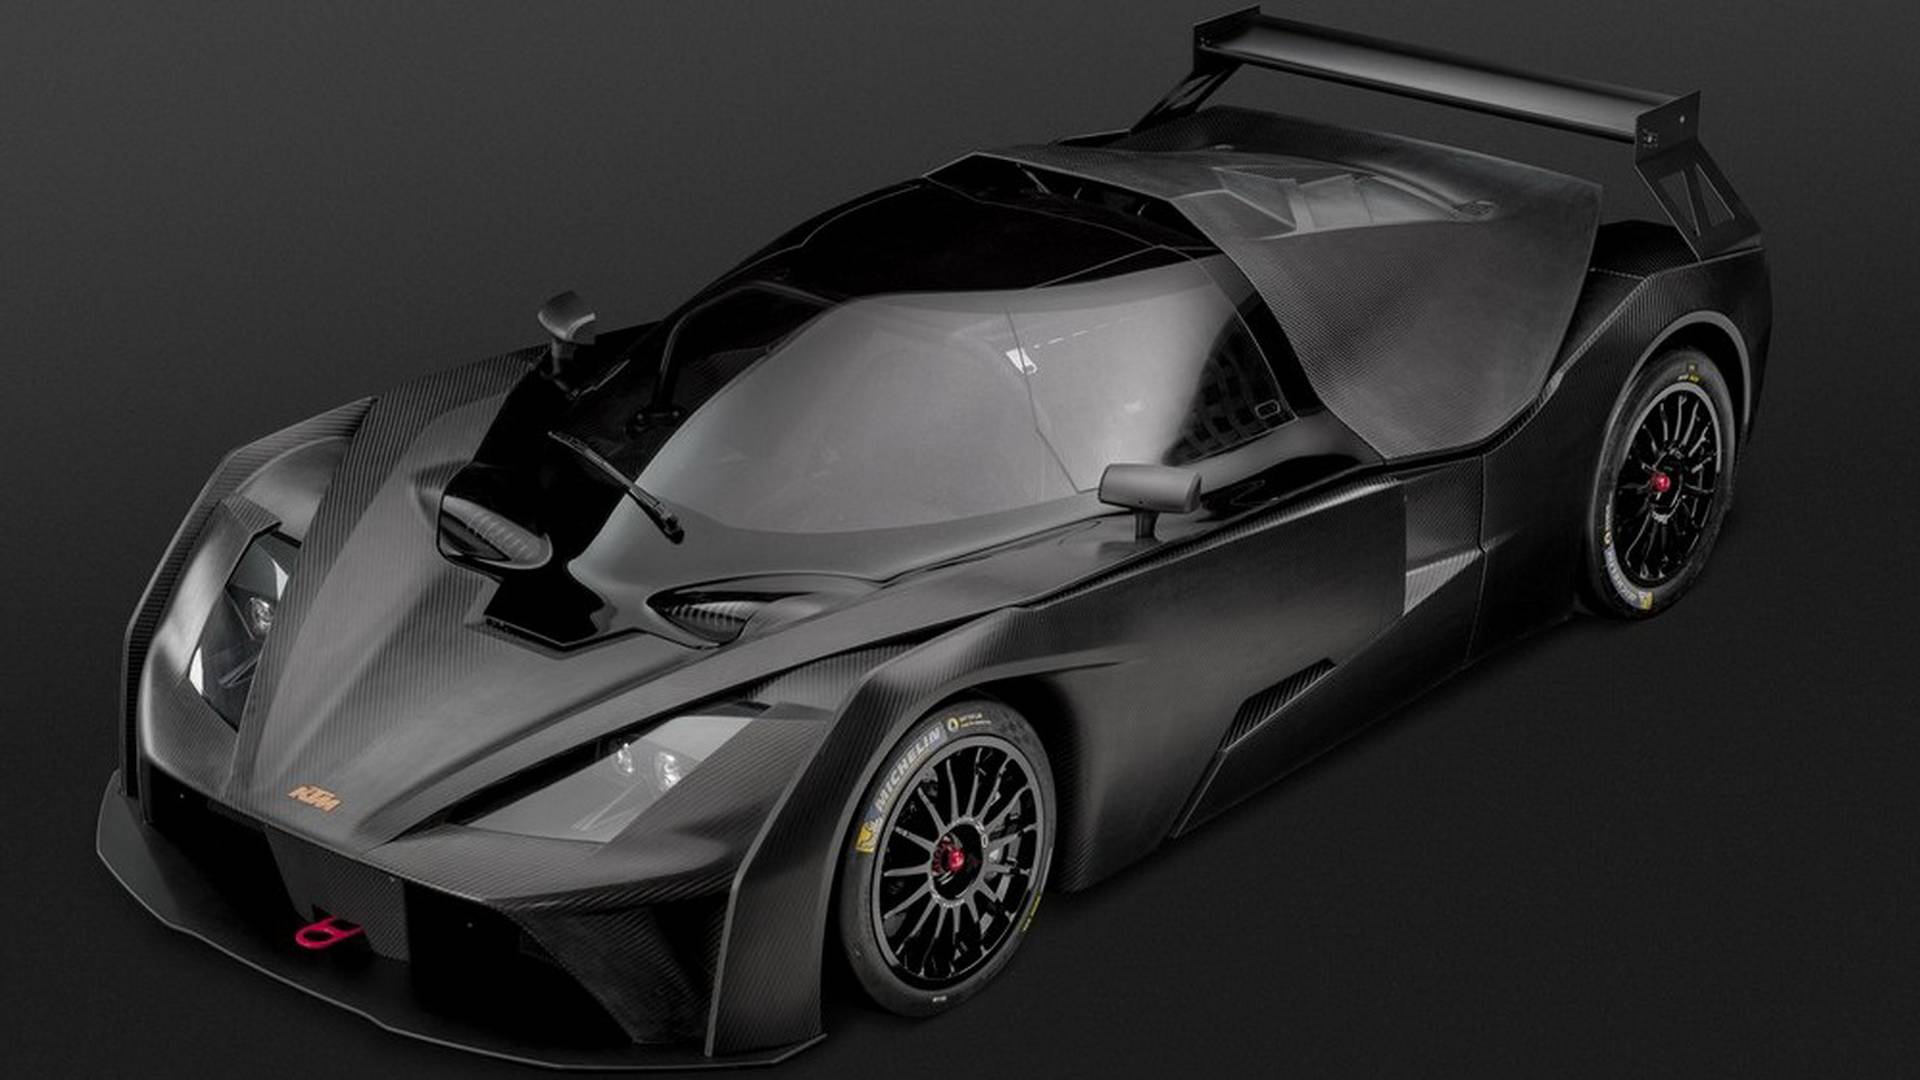 2018 KTM X Bow GT4 By Reiter Engineering